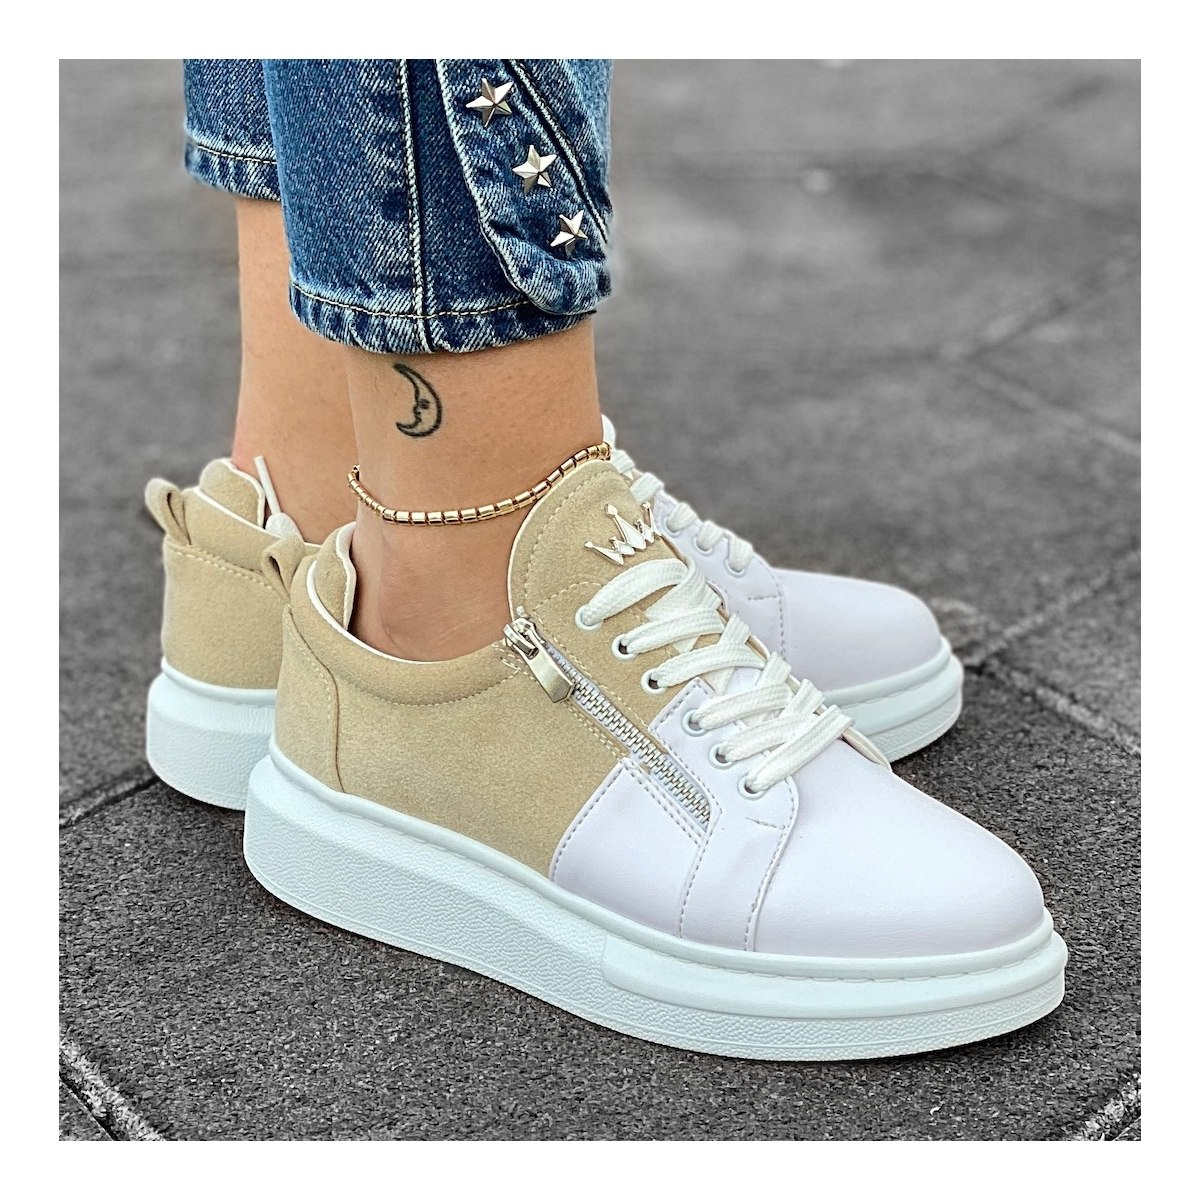 Women's Hype Sole Zipped Style Sneakers In Latte-White